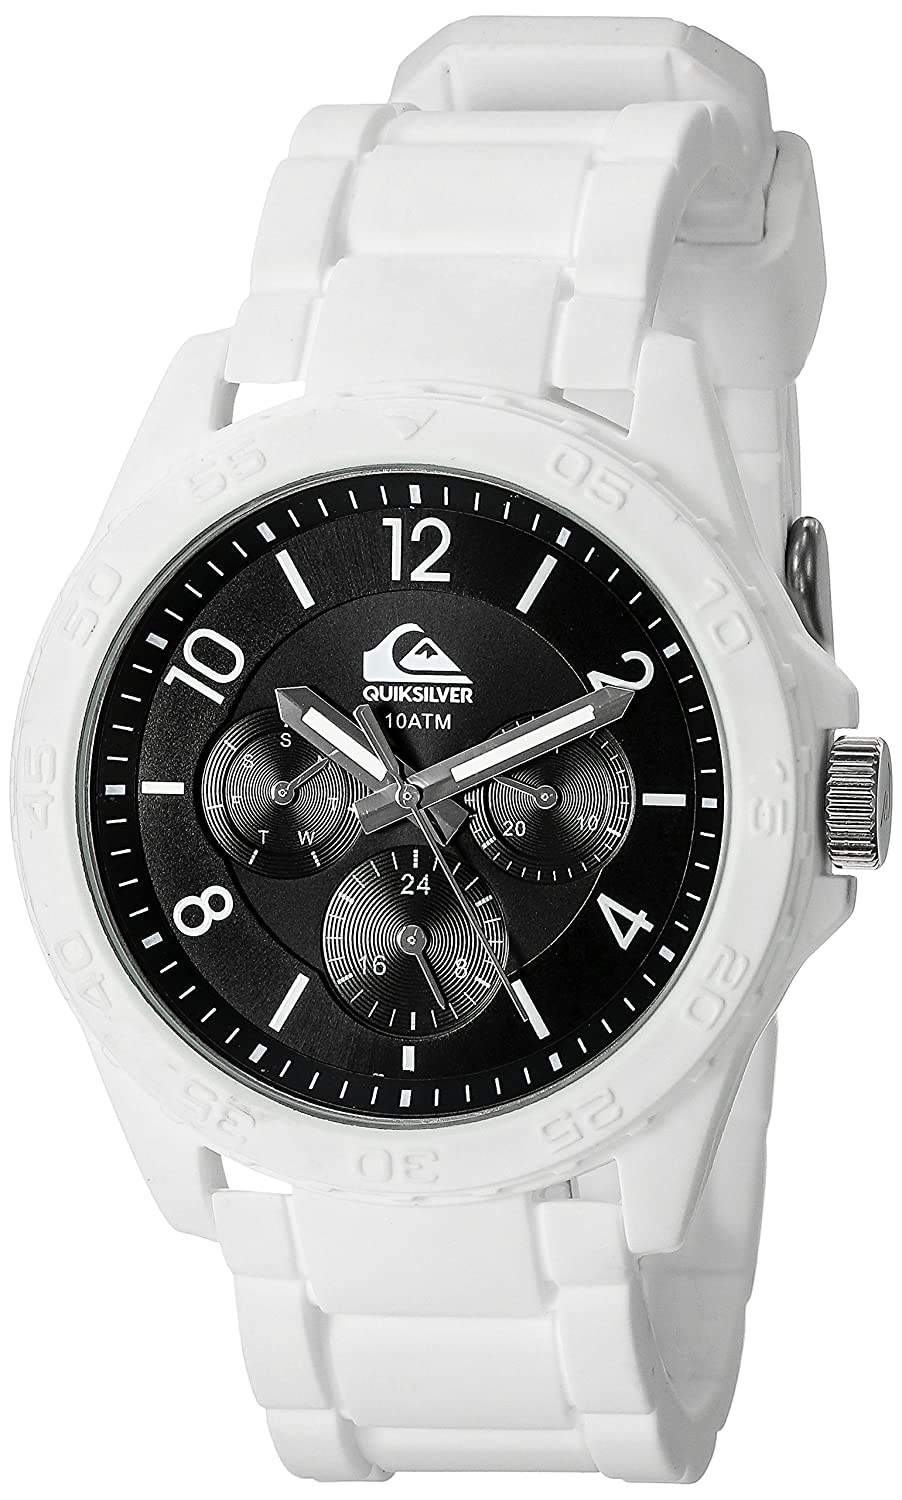 Amazon.com: Quiksilver Mens QS/1016BKWT THE SUMMIT Multi-Function White Silicone Strap Watch: Watches